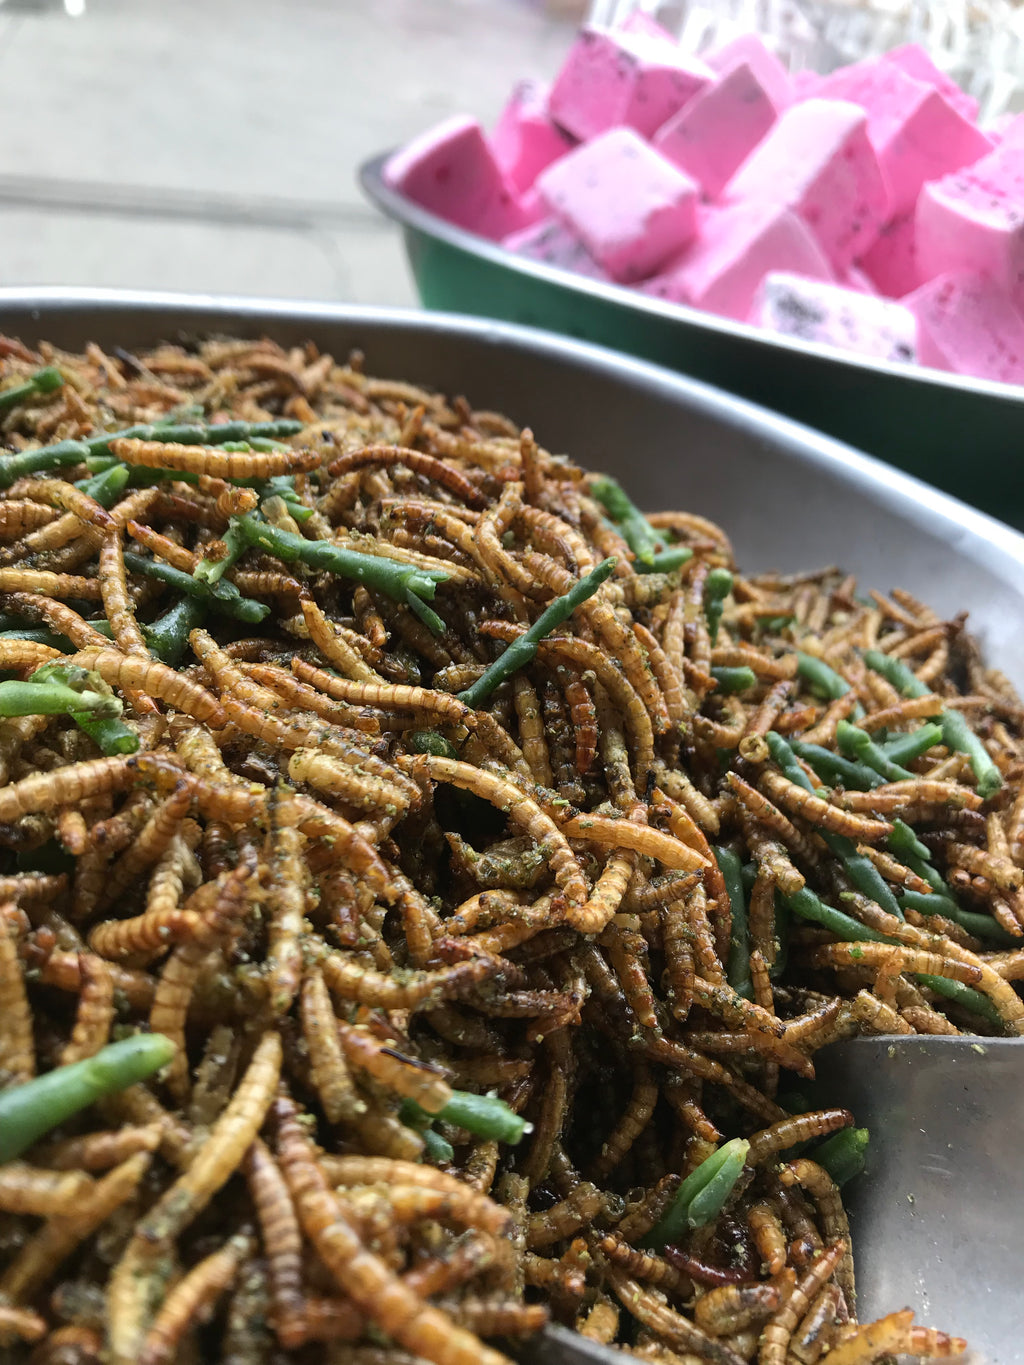 [Quality Edible Insect Products] - Edible Bug Shop Australia